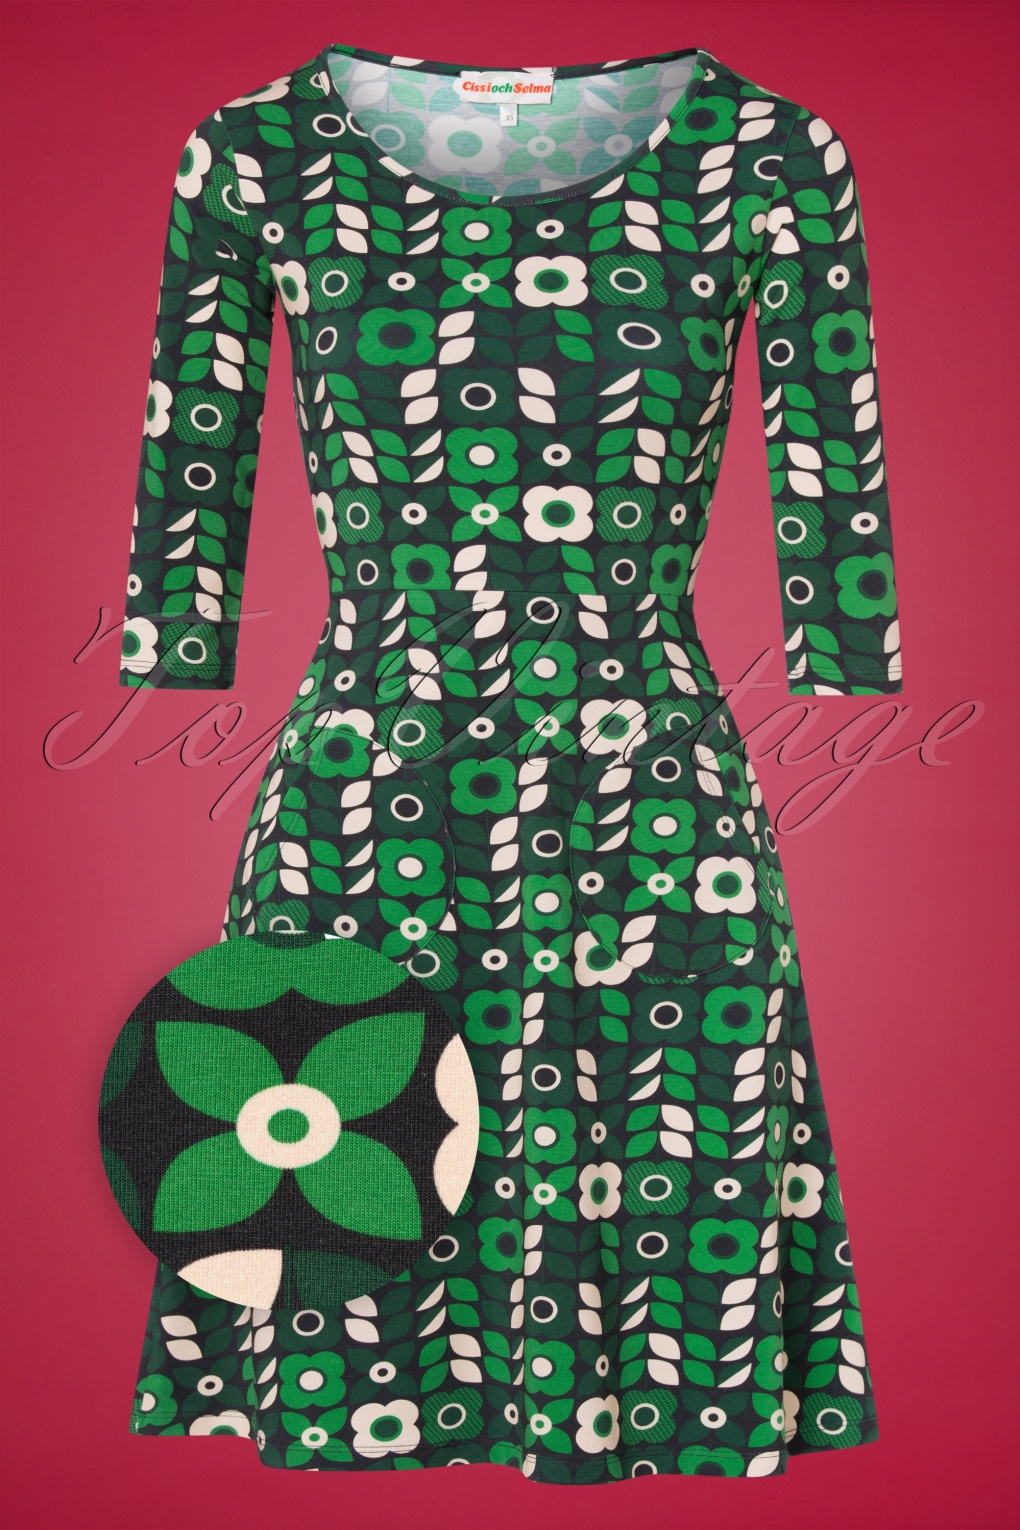 60s Dresses | 1960s Dresses Mod, Mini, Hippie 60s Ester Roman Dress in Navy and Green £91.44 AT vintagedancer.com